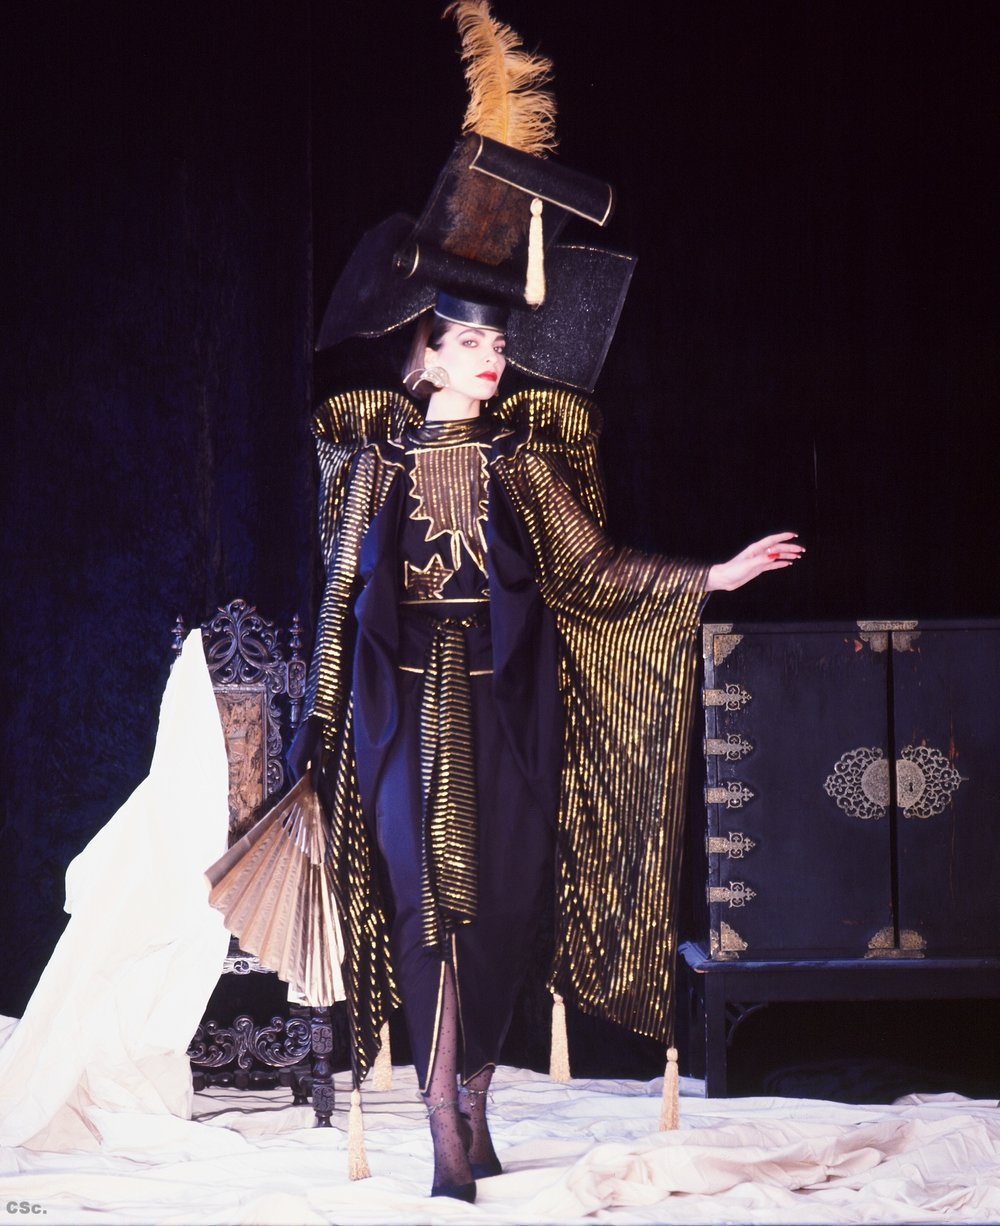 Lynn Spanich in Madam Butterfly Costume from Piccadilly Theatre Show, 1984, photograph by Joe Lyons